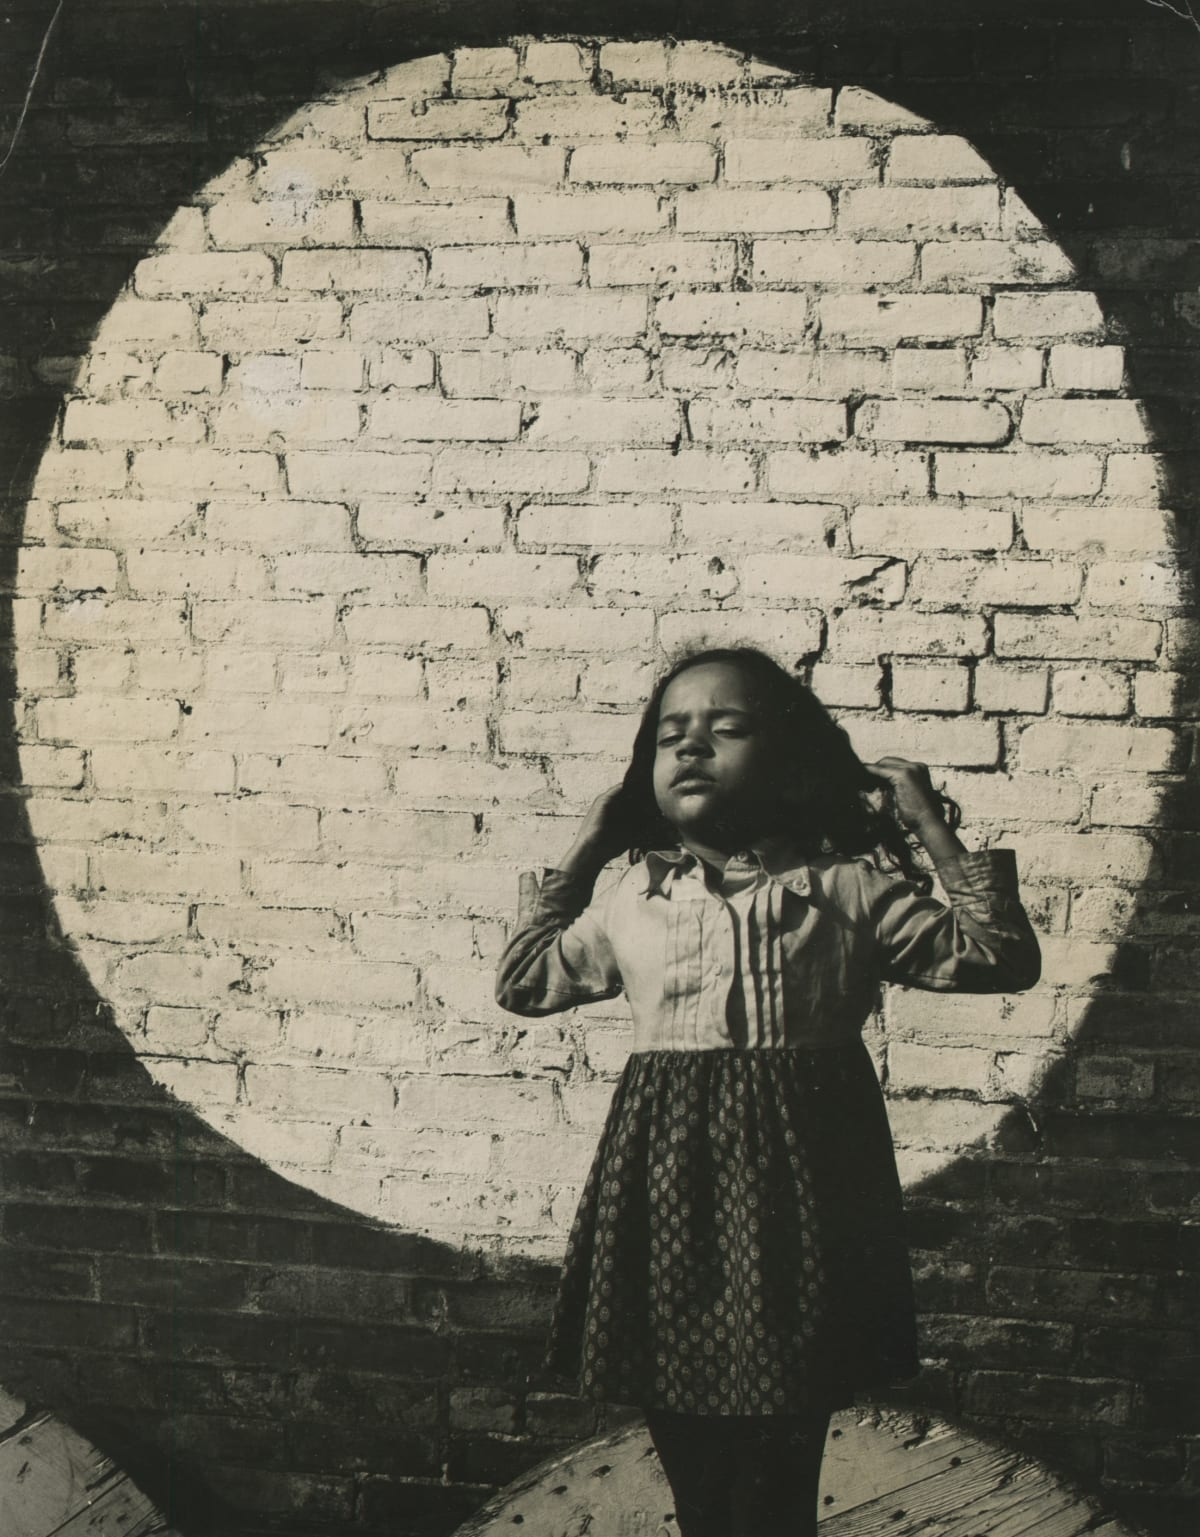 Arthur Tress, Girl in Painted Spotlight, NY NY, 1968